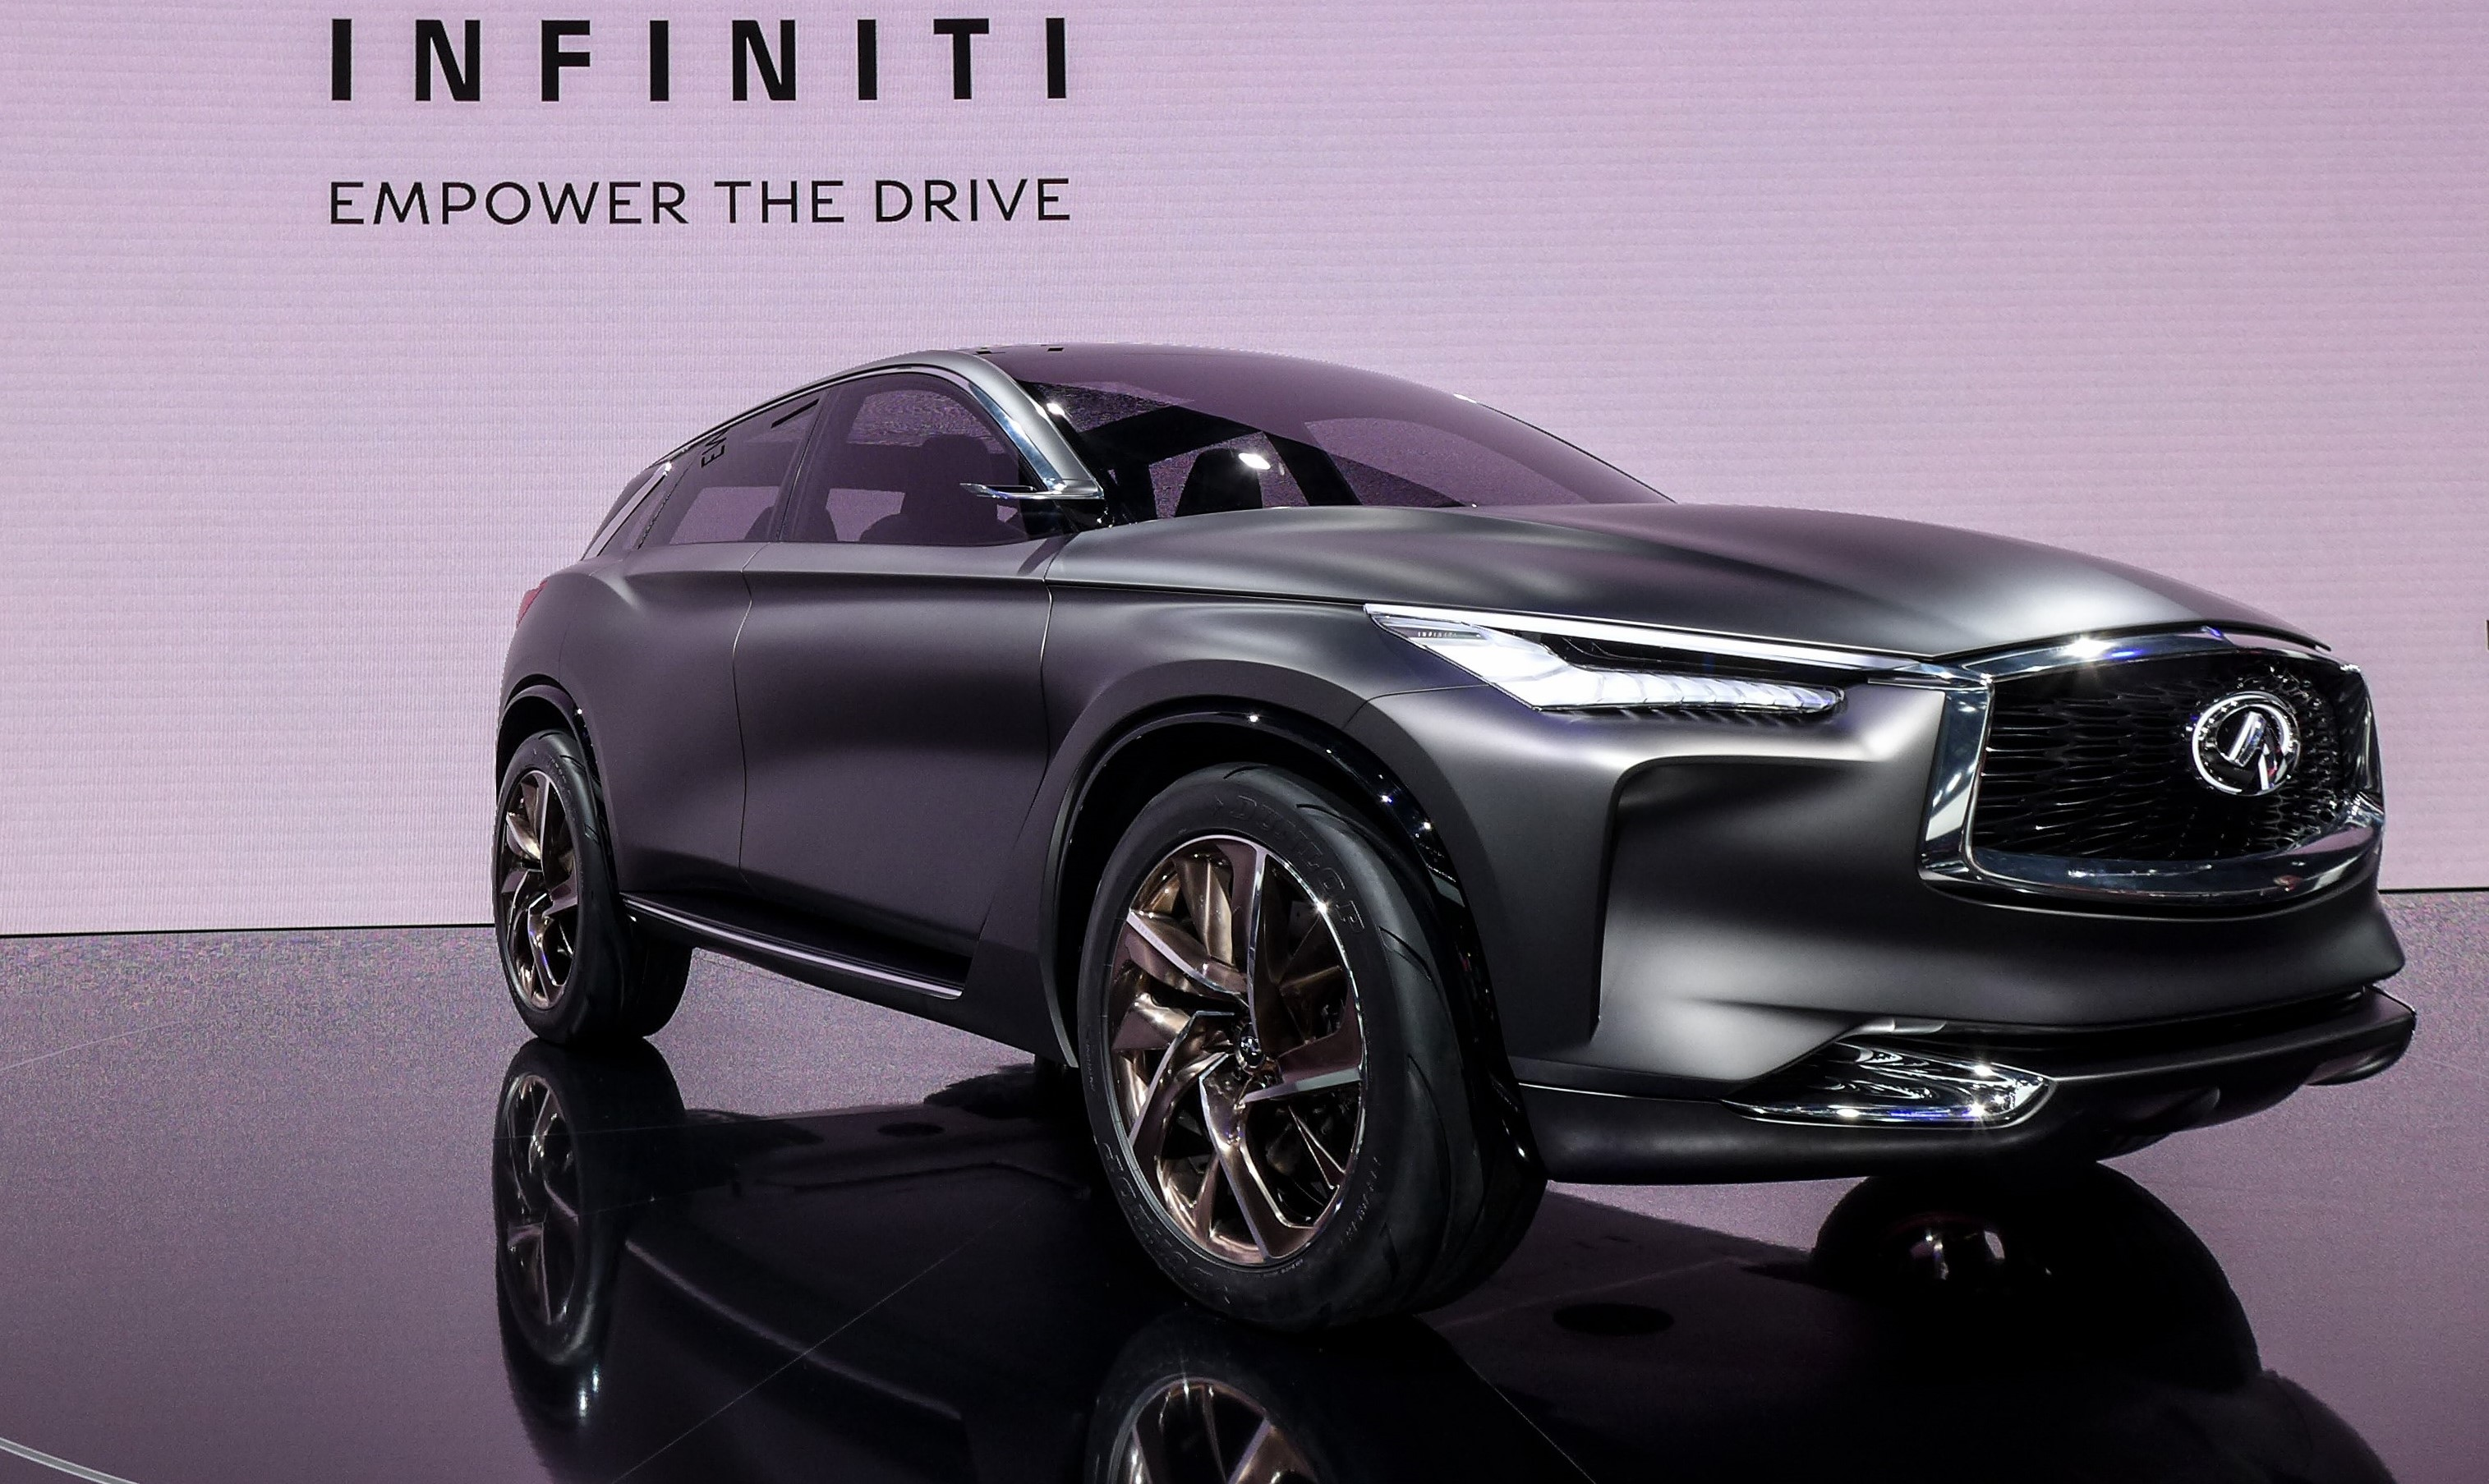 infiniti qx sport inspiration superbe pr misse d un futur suv premium et high tech les voitures. Black Bedroom Furniture Sets. Home Design Ideas